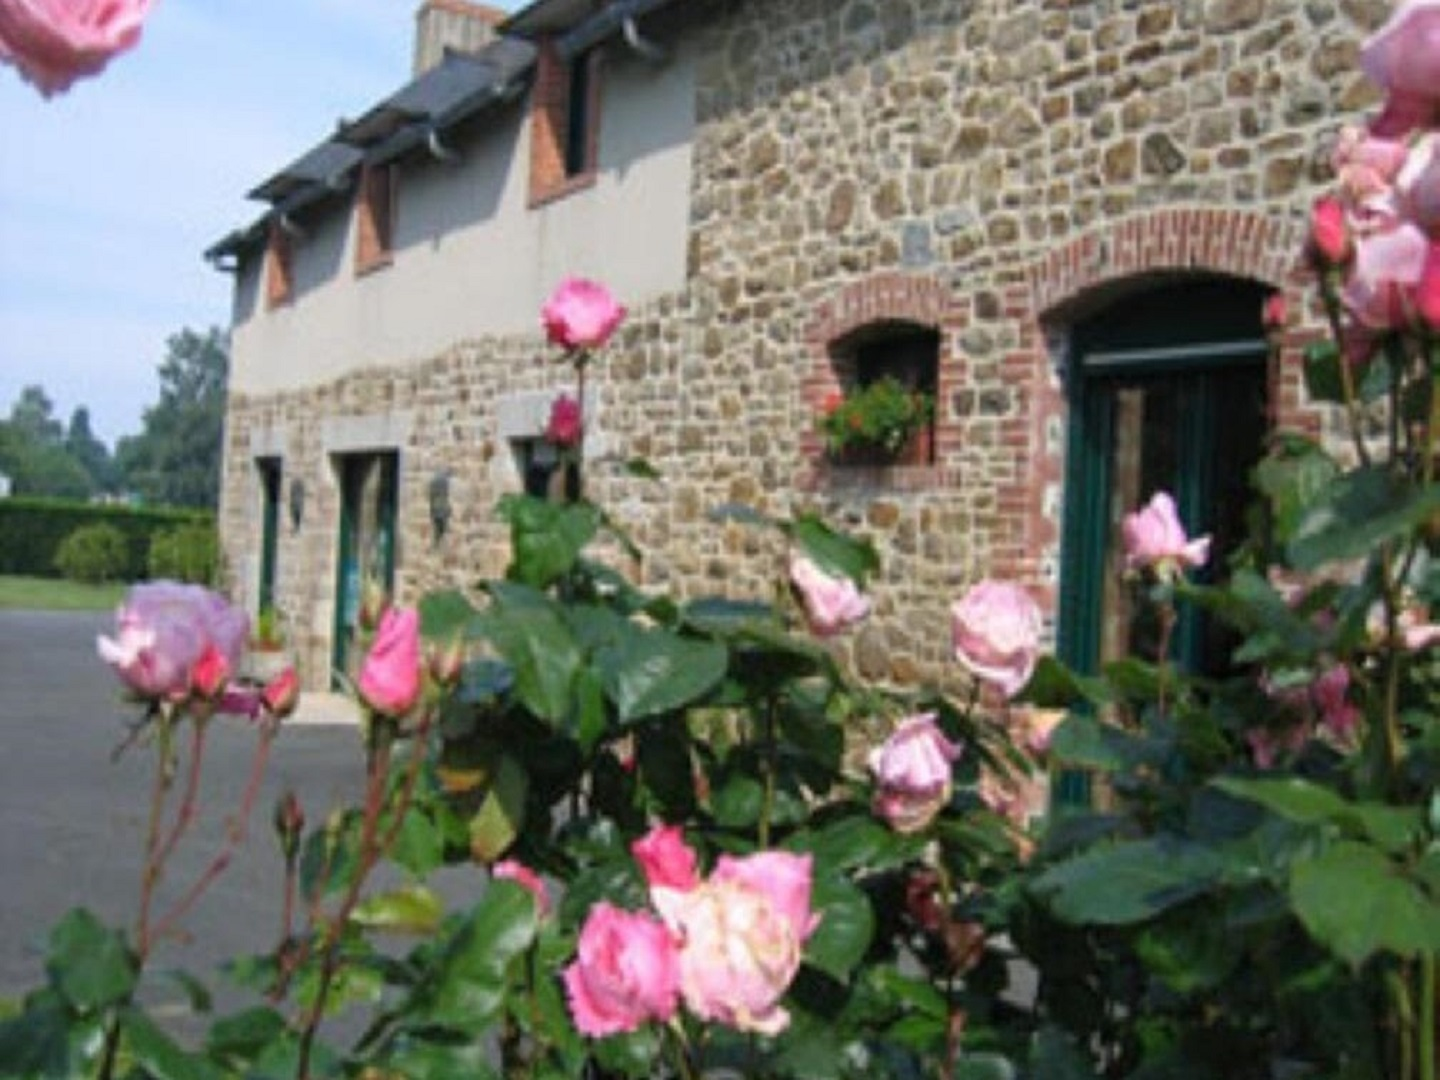 A pink flower is standing in front of a building at La Jacotière .